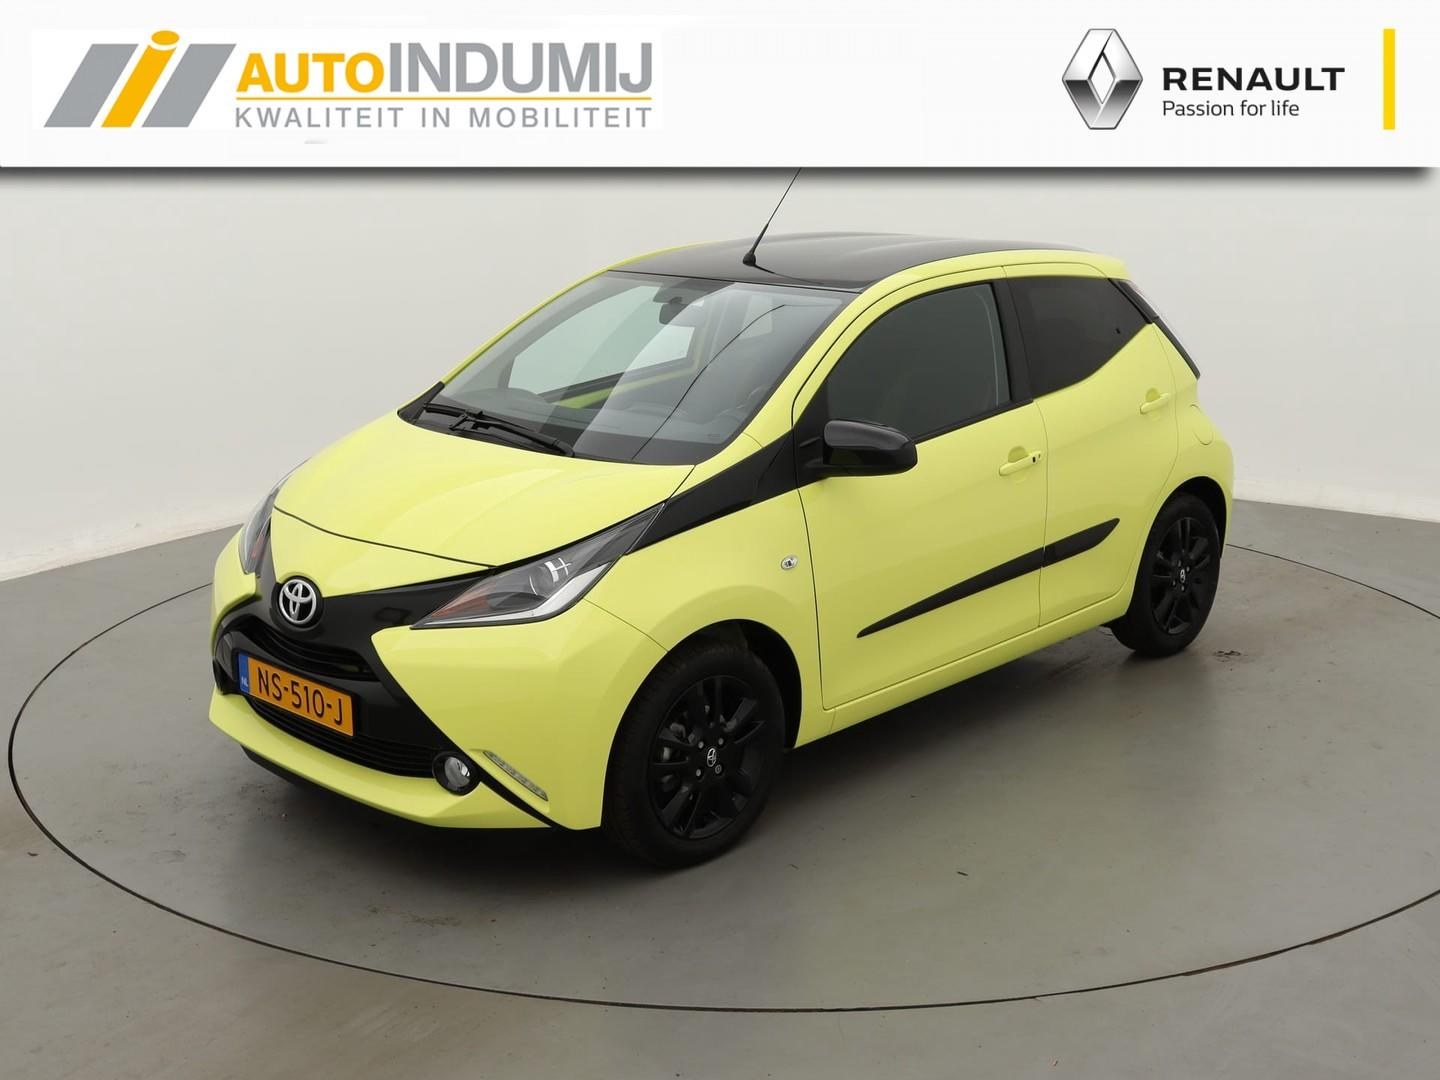 Toyota Aygo 1.0 vvt-i automaat x-cite / navigatie / climate control / camera!